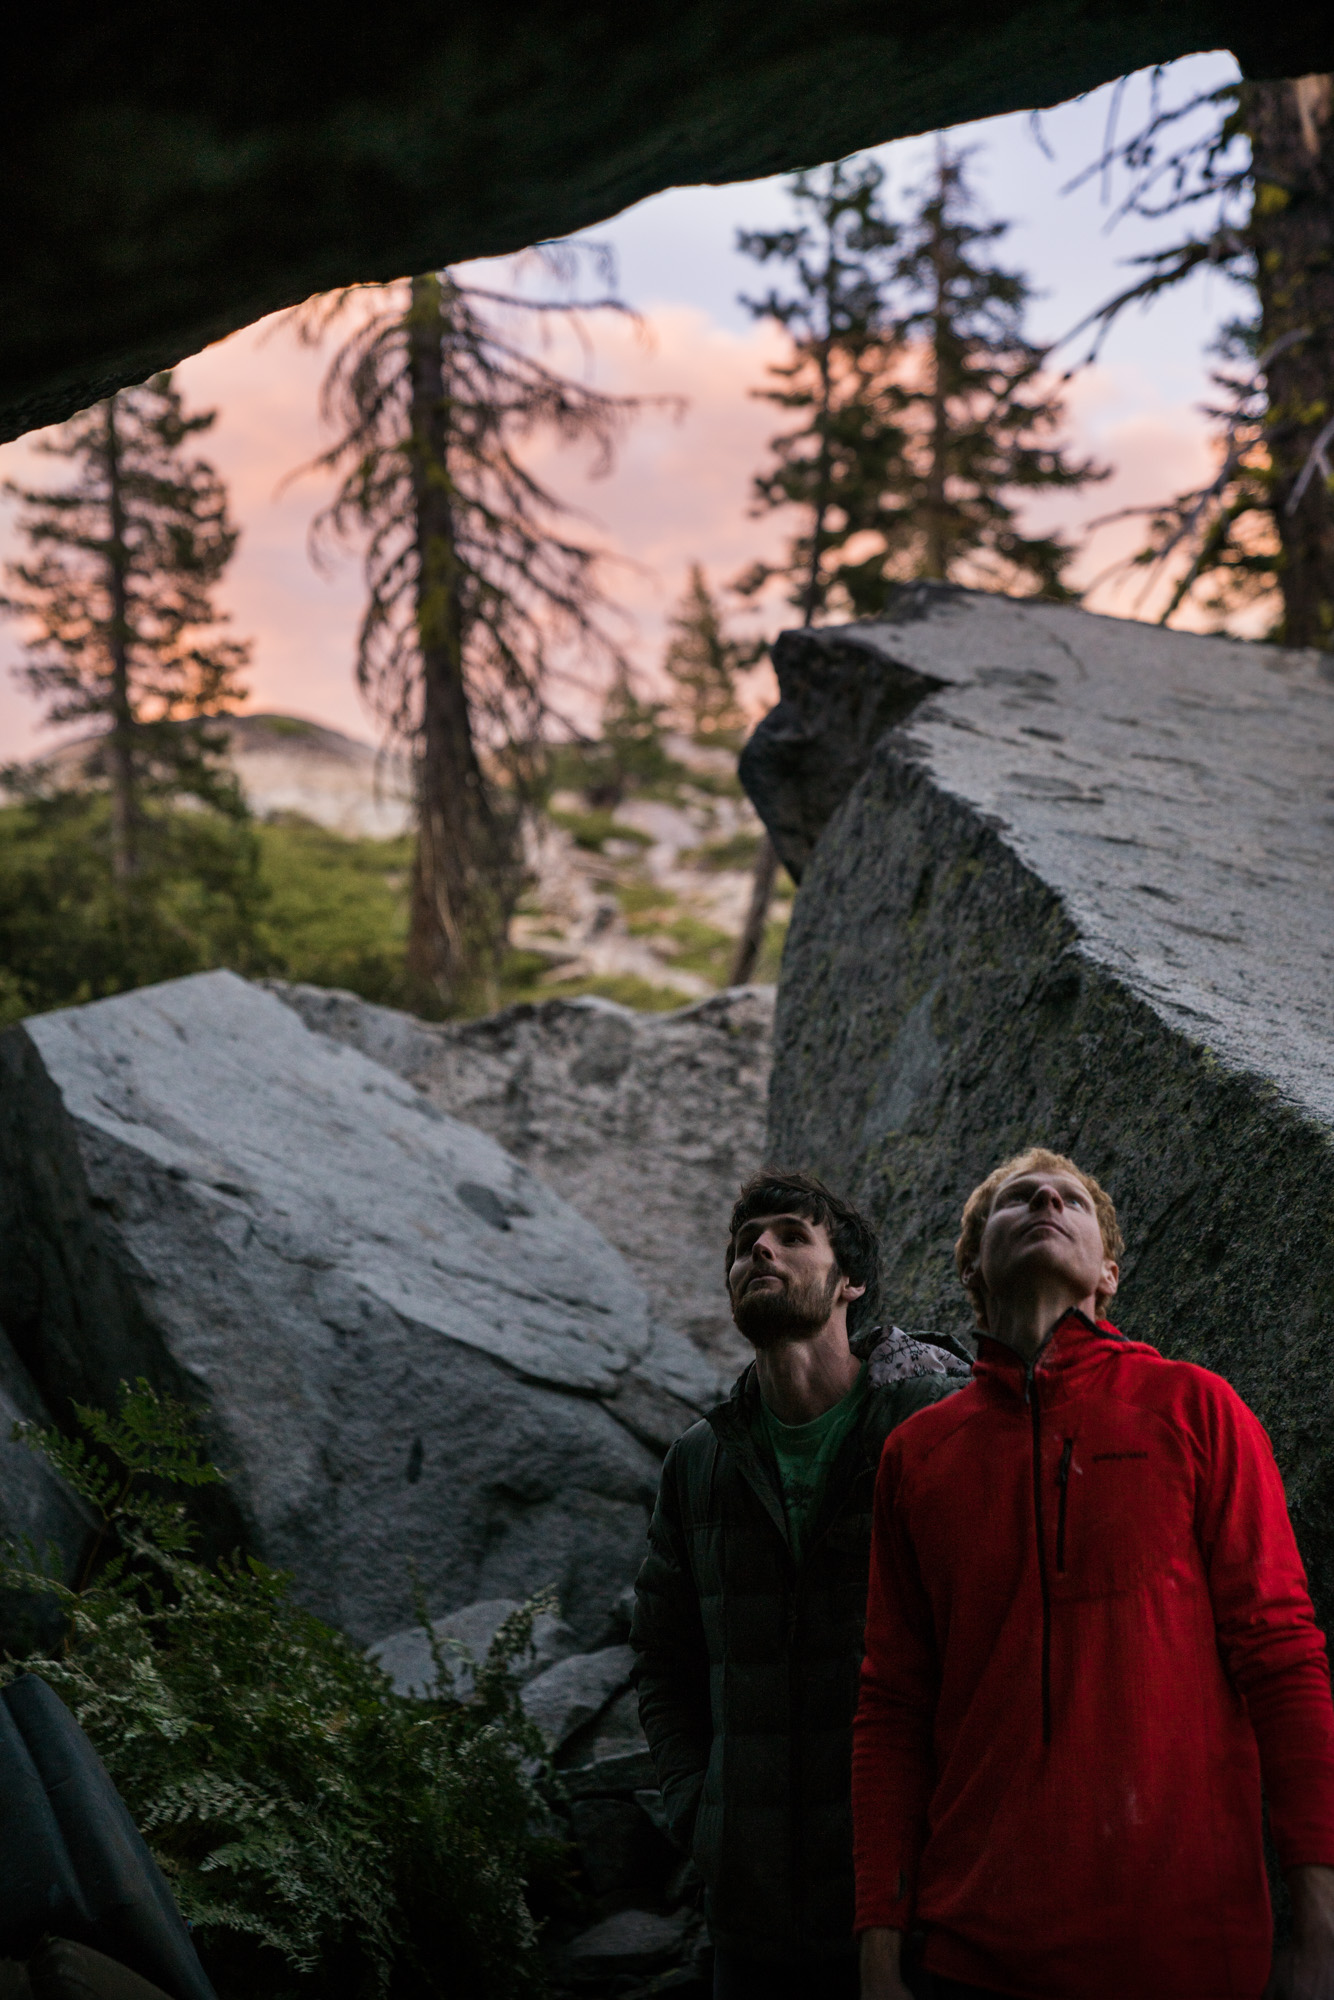 Just some bois in the woods, starin' at a boulder.